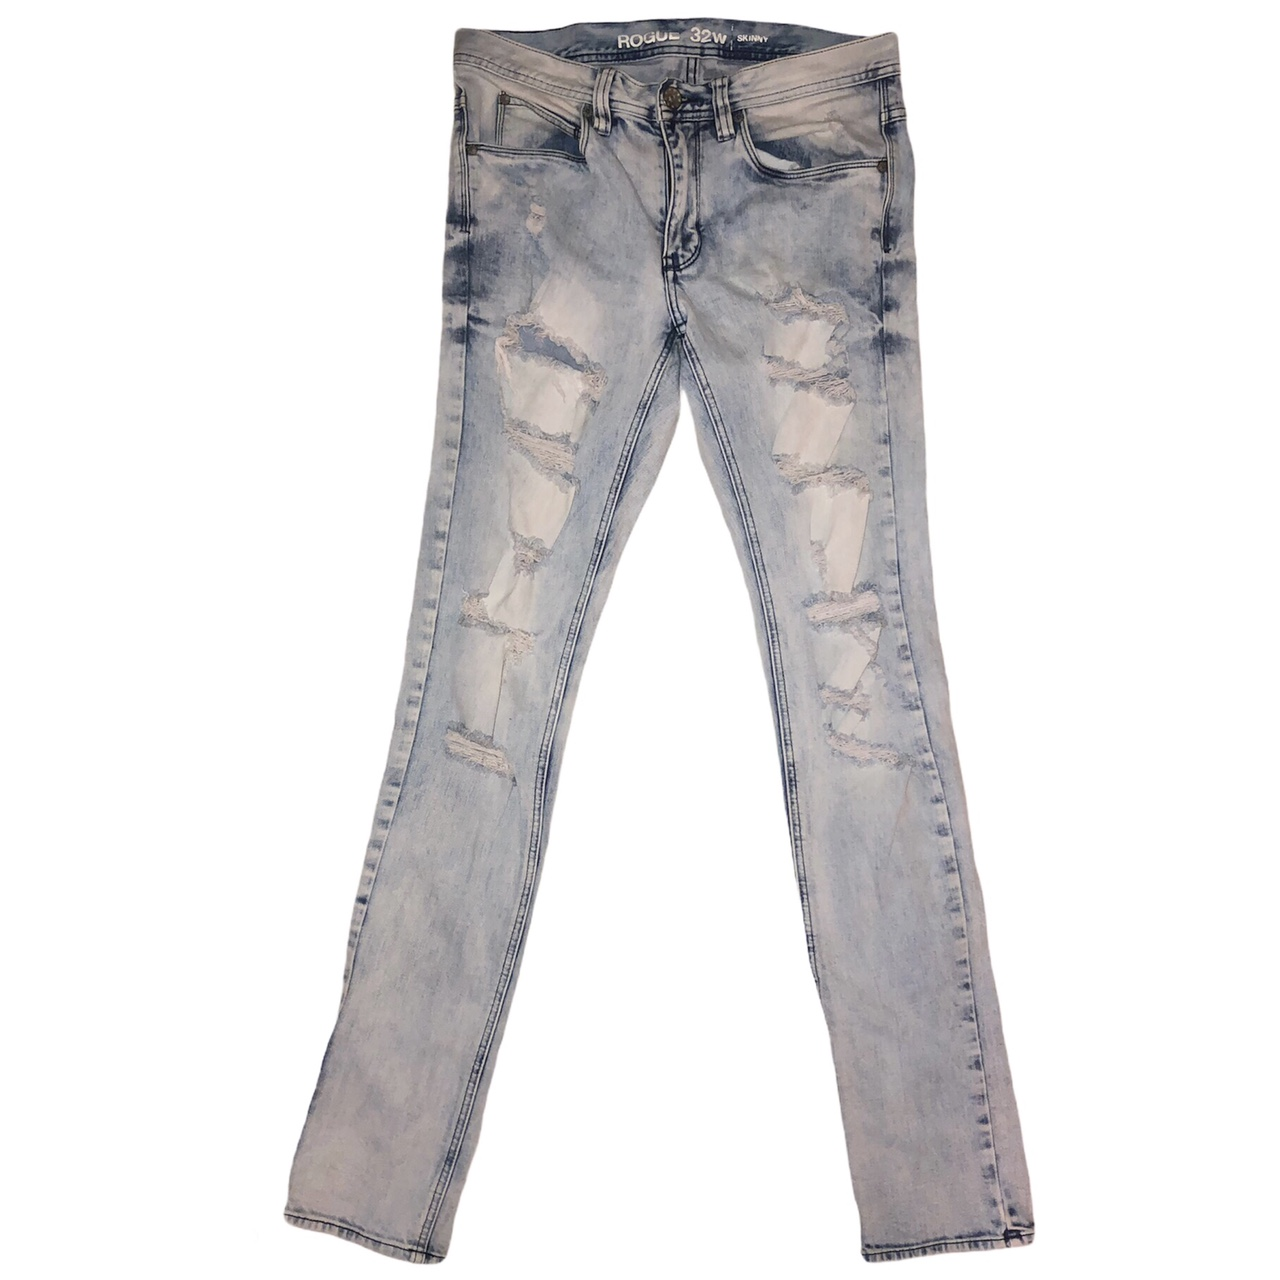 Product Image 1 - ROGUE light wash destroyed/distressed skinny